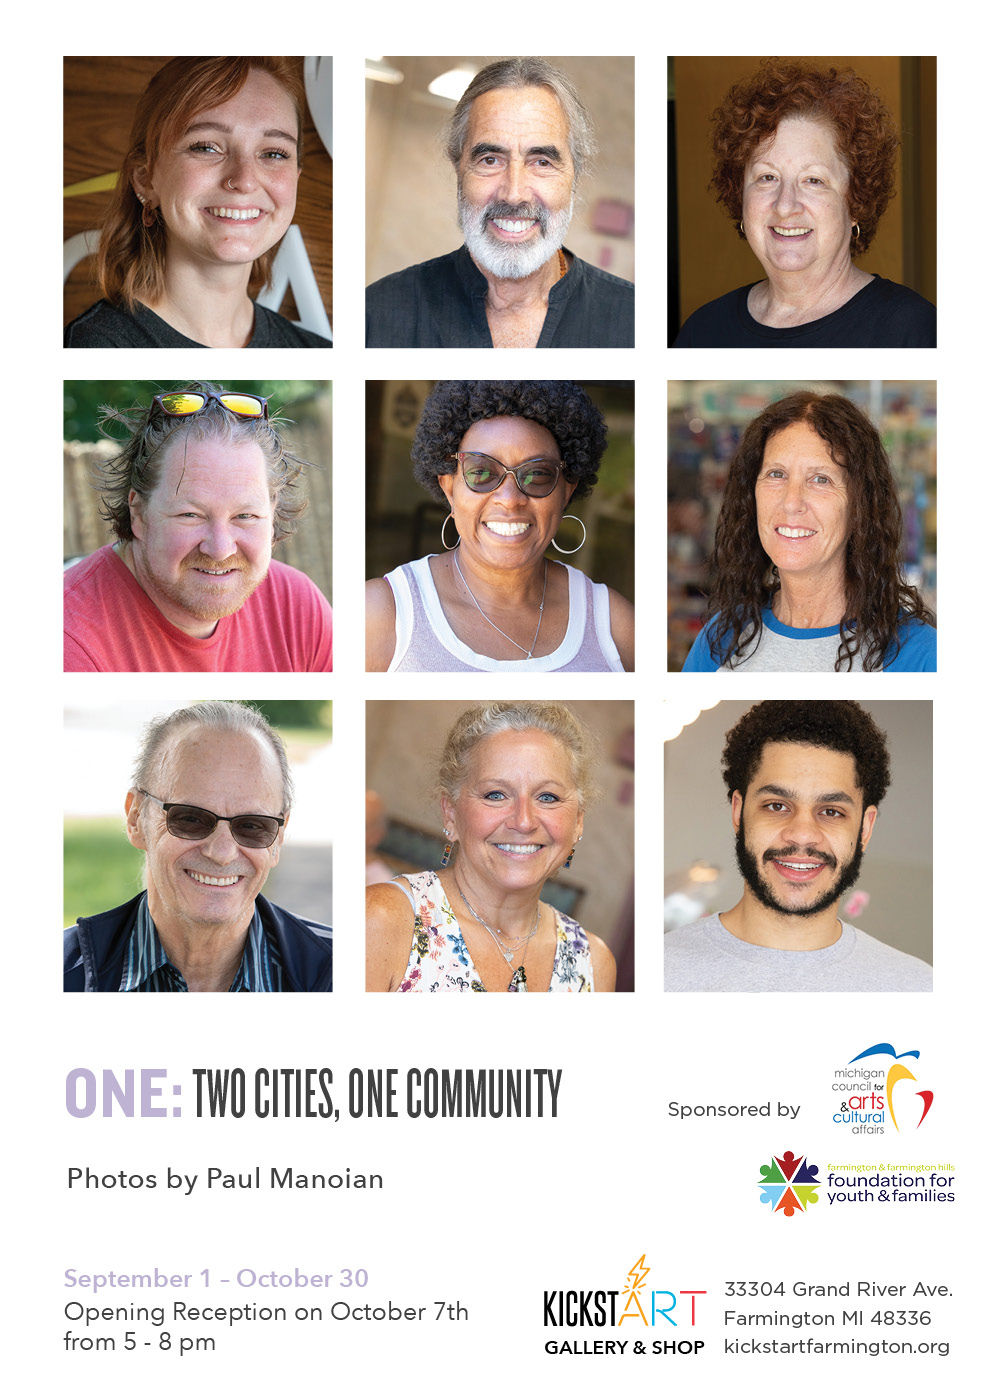 ONE: Two Cities, One Community at KickstART Gallery